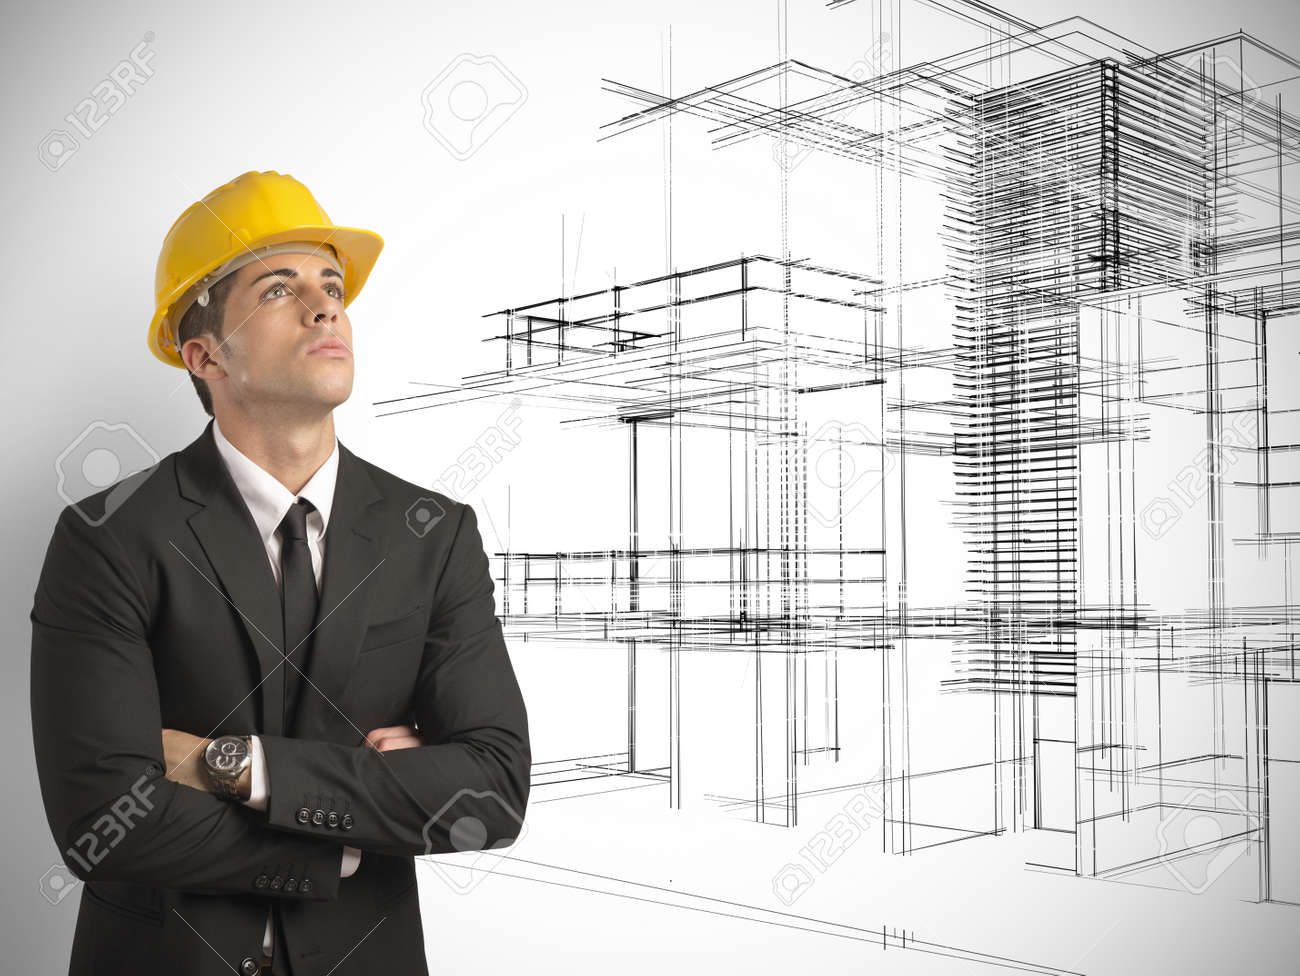 architect thinking a new project of modern buildings stock photo